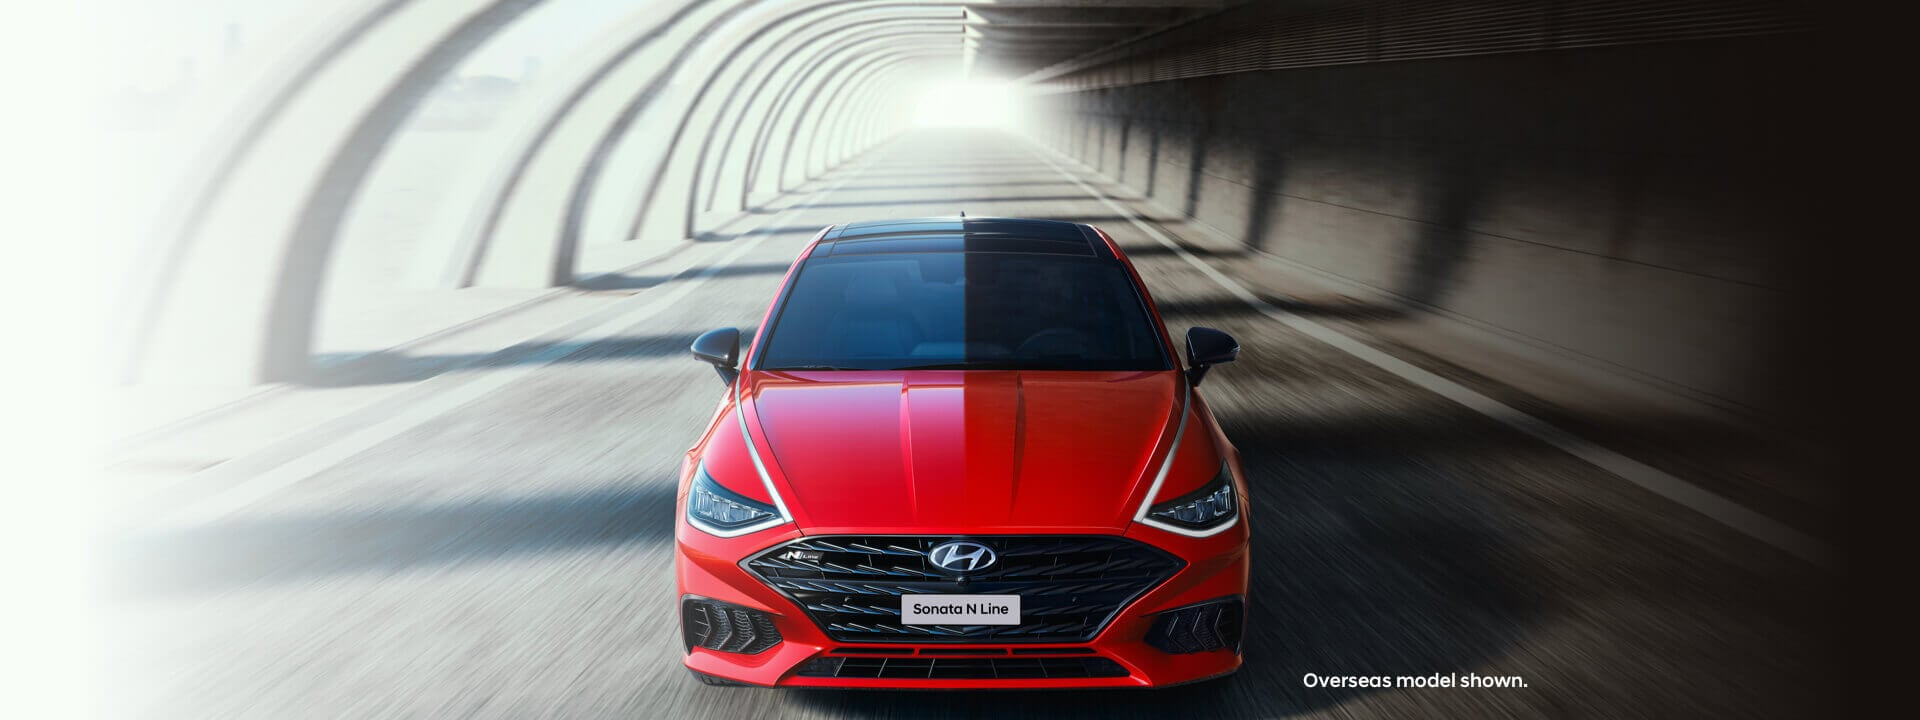 Coming soon: All-new Sonata N Line.